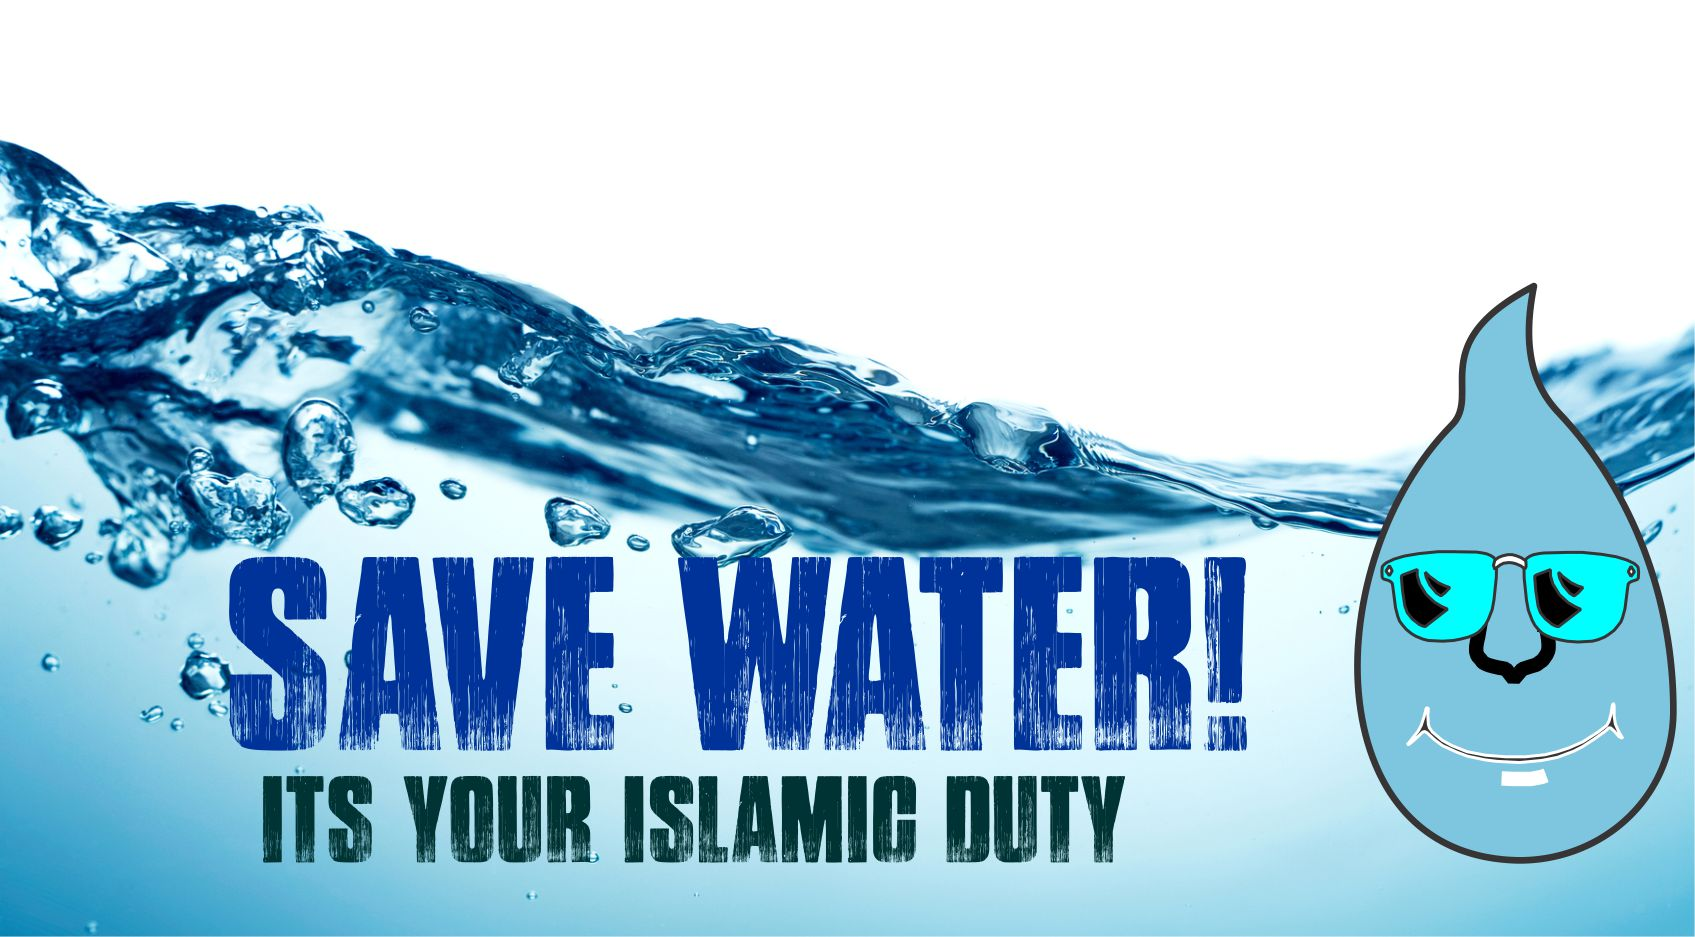 Muslim community urged to save water despite level 3 restrictions news - water poster2curves - News